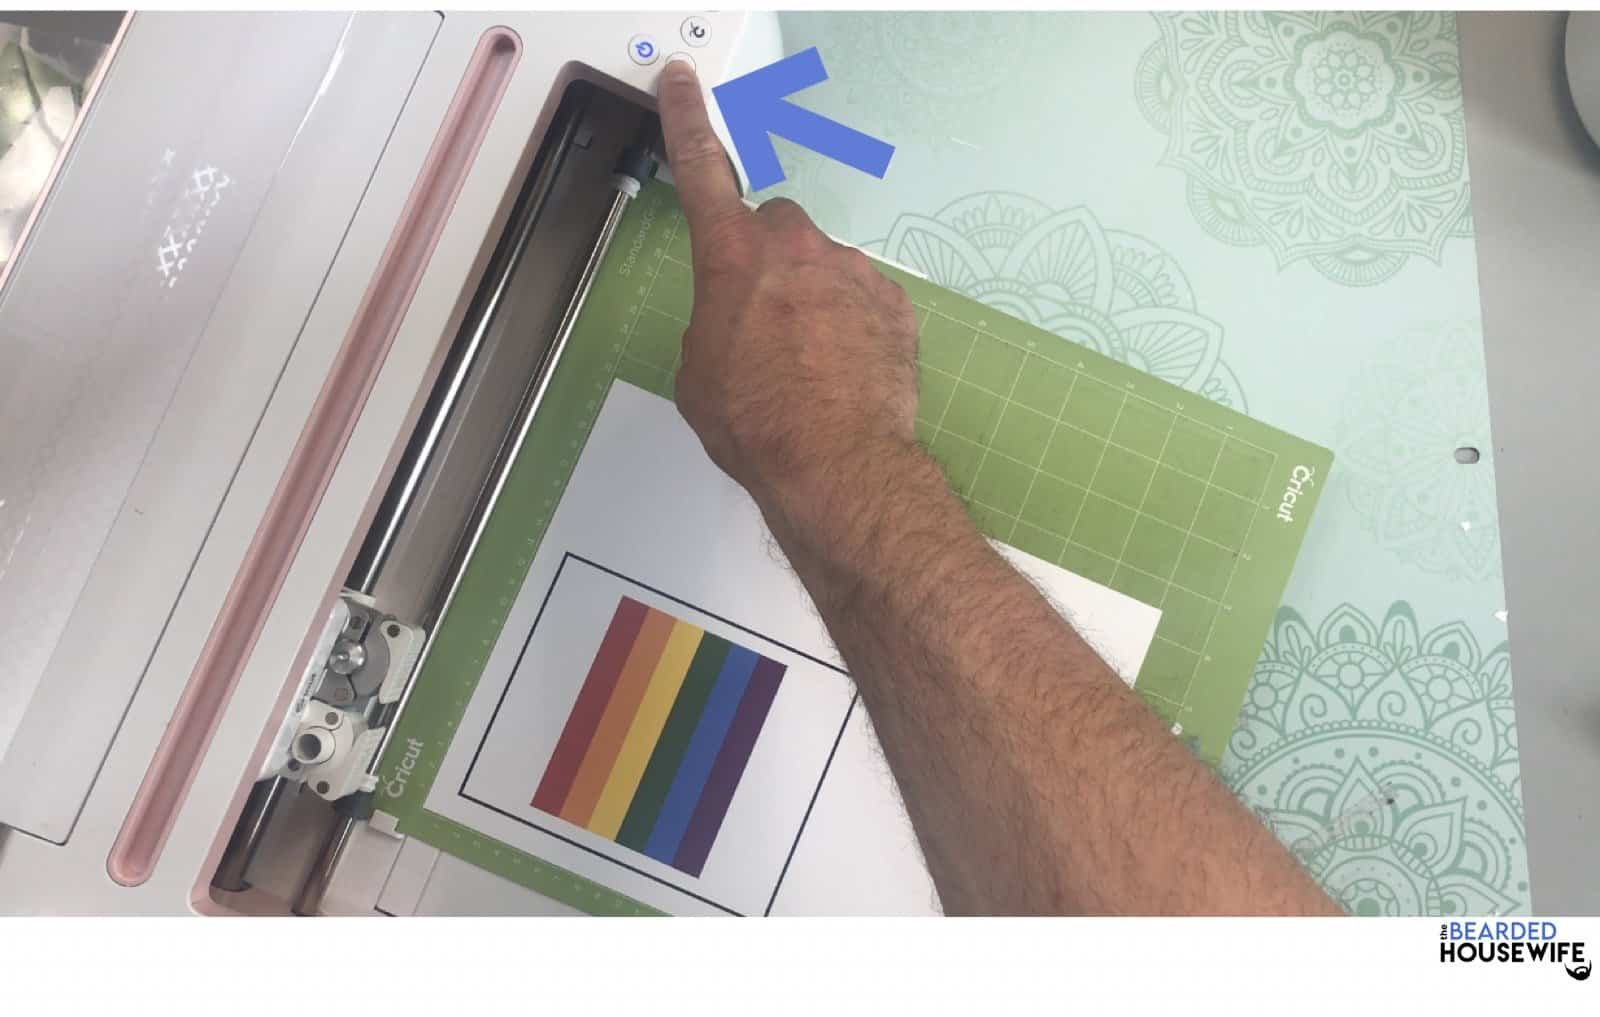 load the mat by pressing the flashing arrows